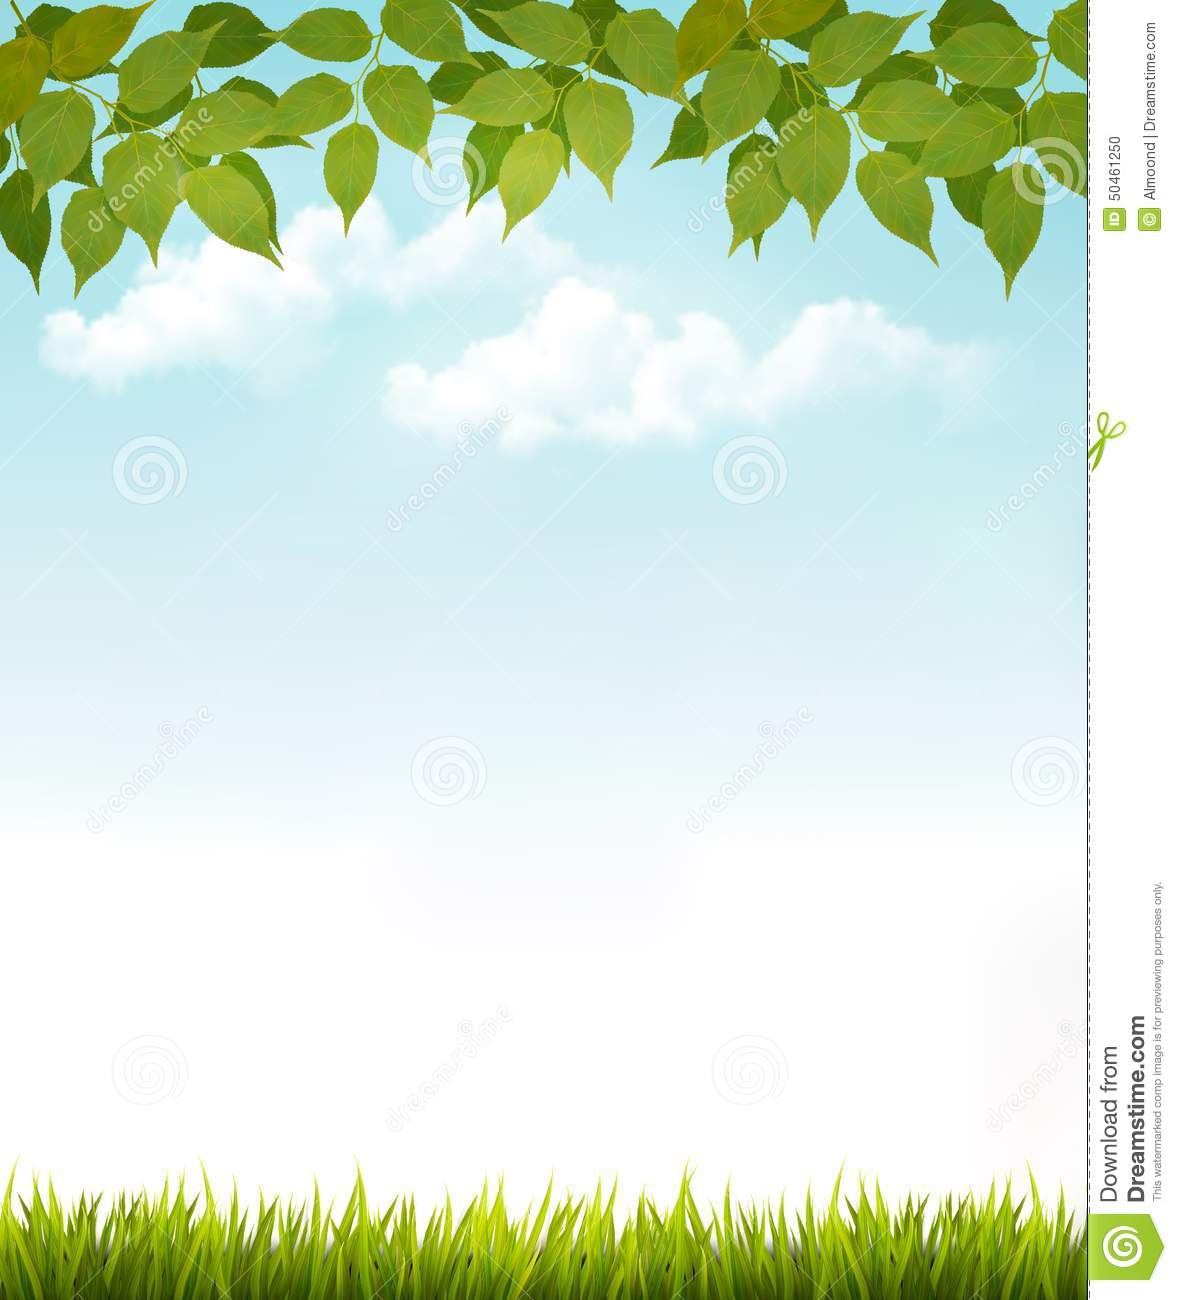 Nature background clipart 8 » Clipart Station.